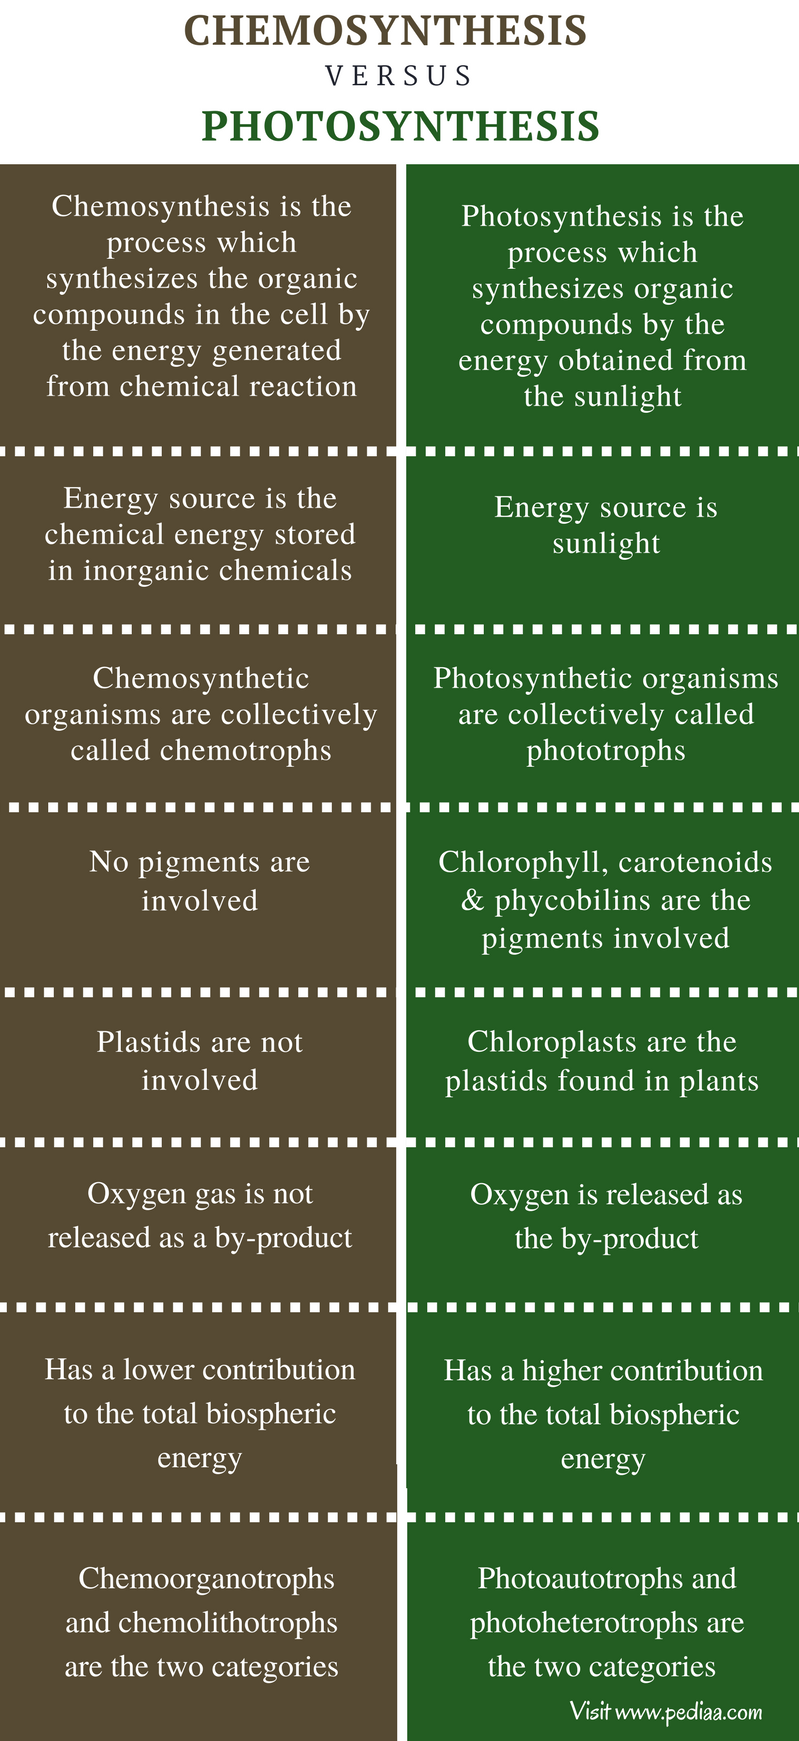 Difference Between Chemosynthesis and Photosynthesis - Comparison Summary